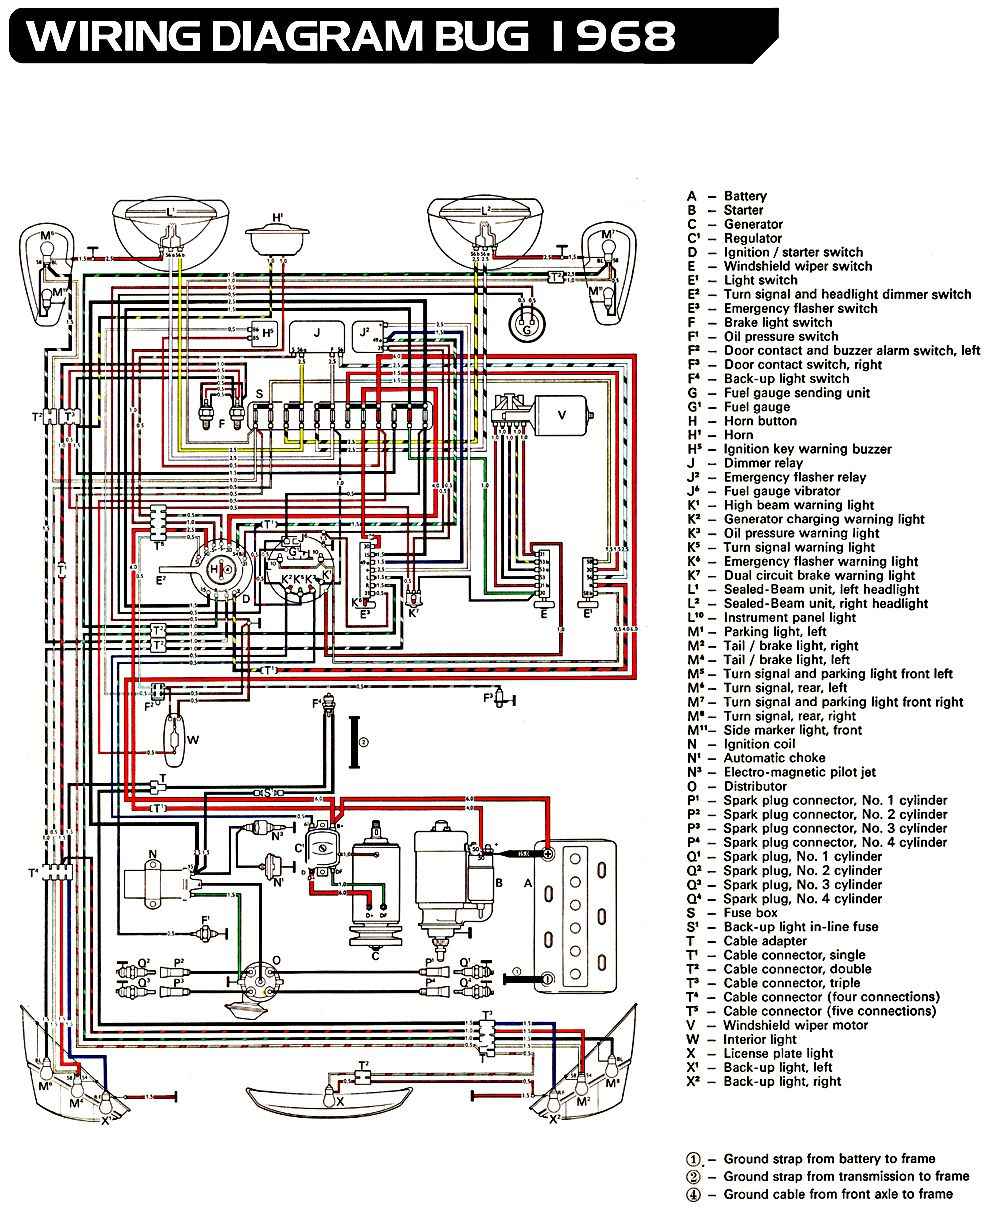 Vw Bug Ignition Wiring Diagram 73 Free Car